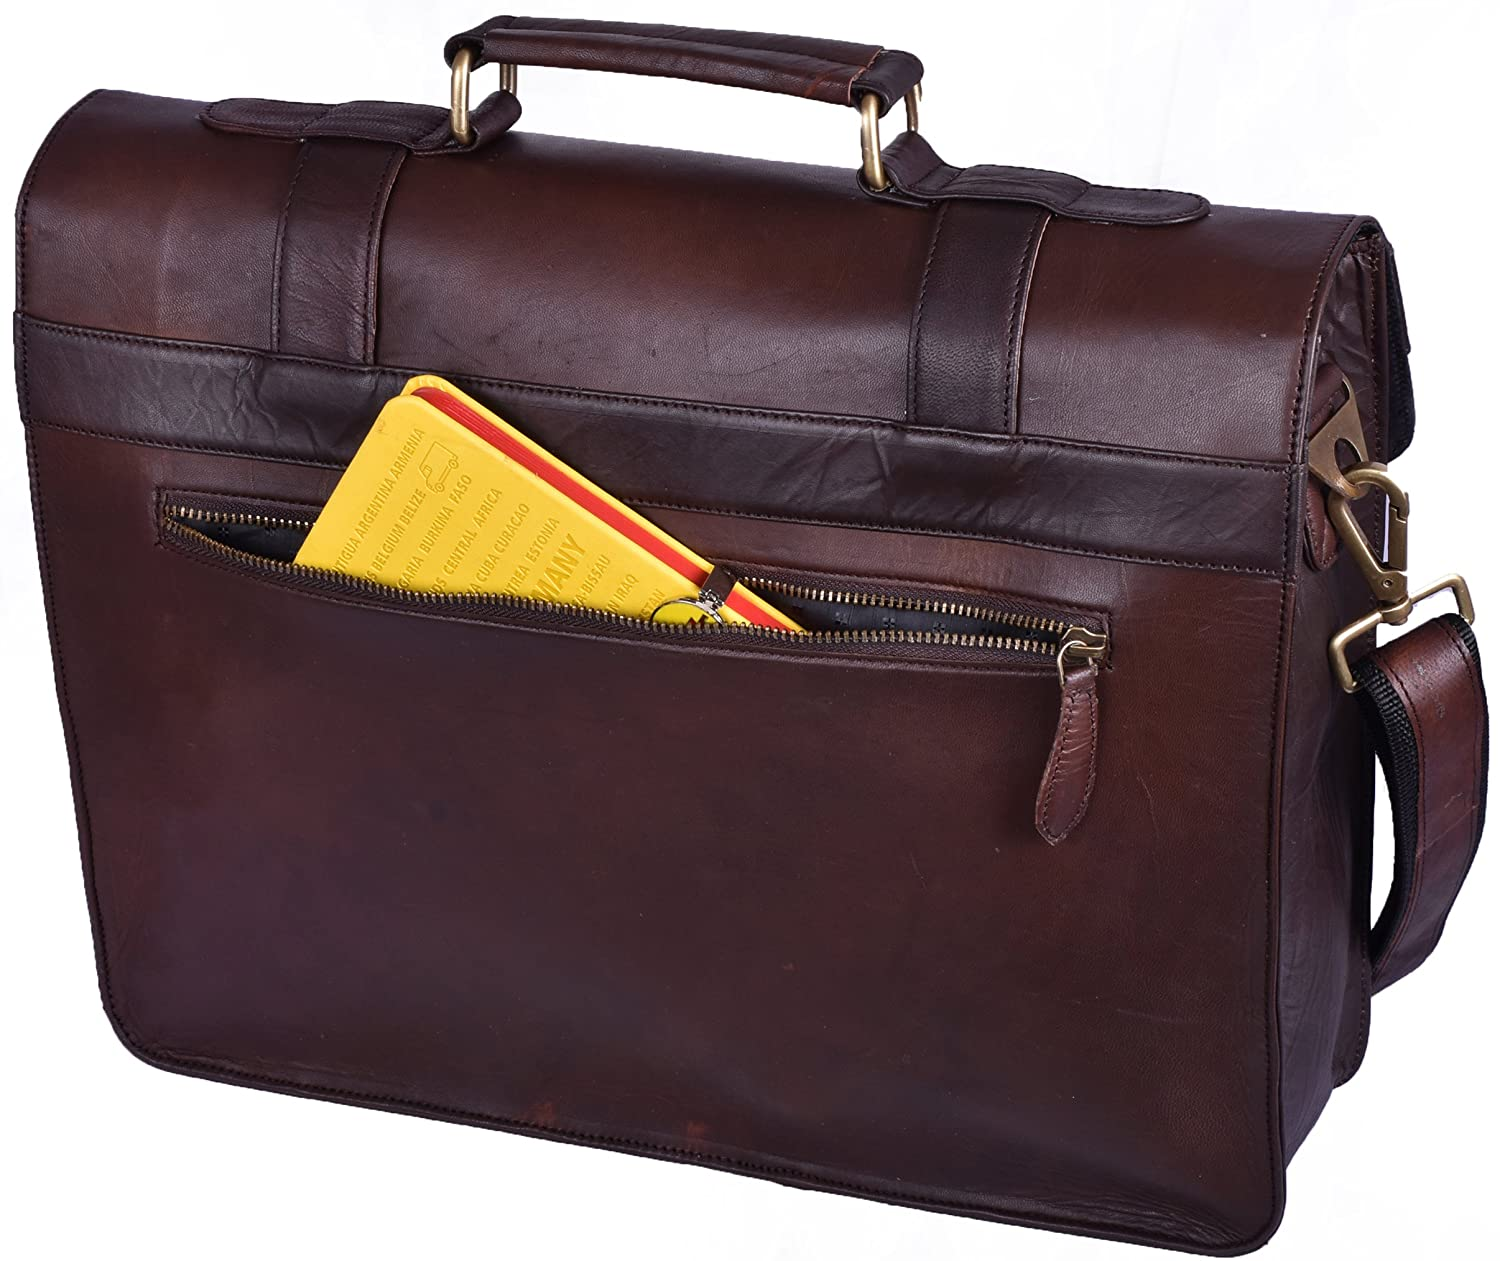 Handmade World Leather Briefcase for Men Women Messenger Bags 16 Inch Brown  Vintage Distressed Look Best Laptop ... 60362348152b3